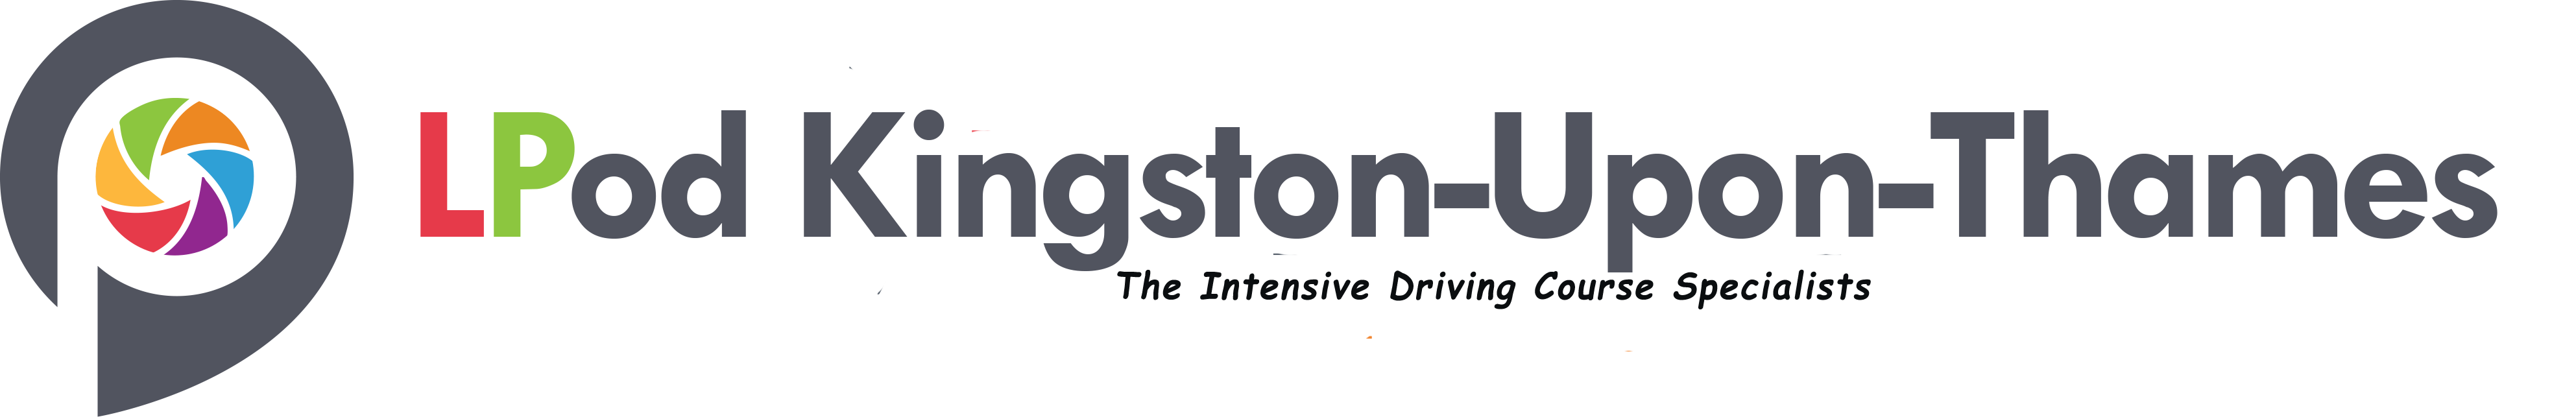 Intensive Driving Courses Kingston-Upon-Thames, Intensive Driving lessons Kingston-Upon-Thames